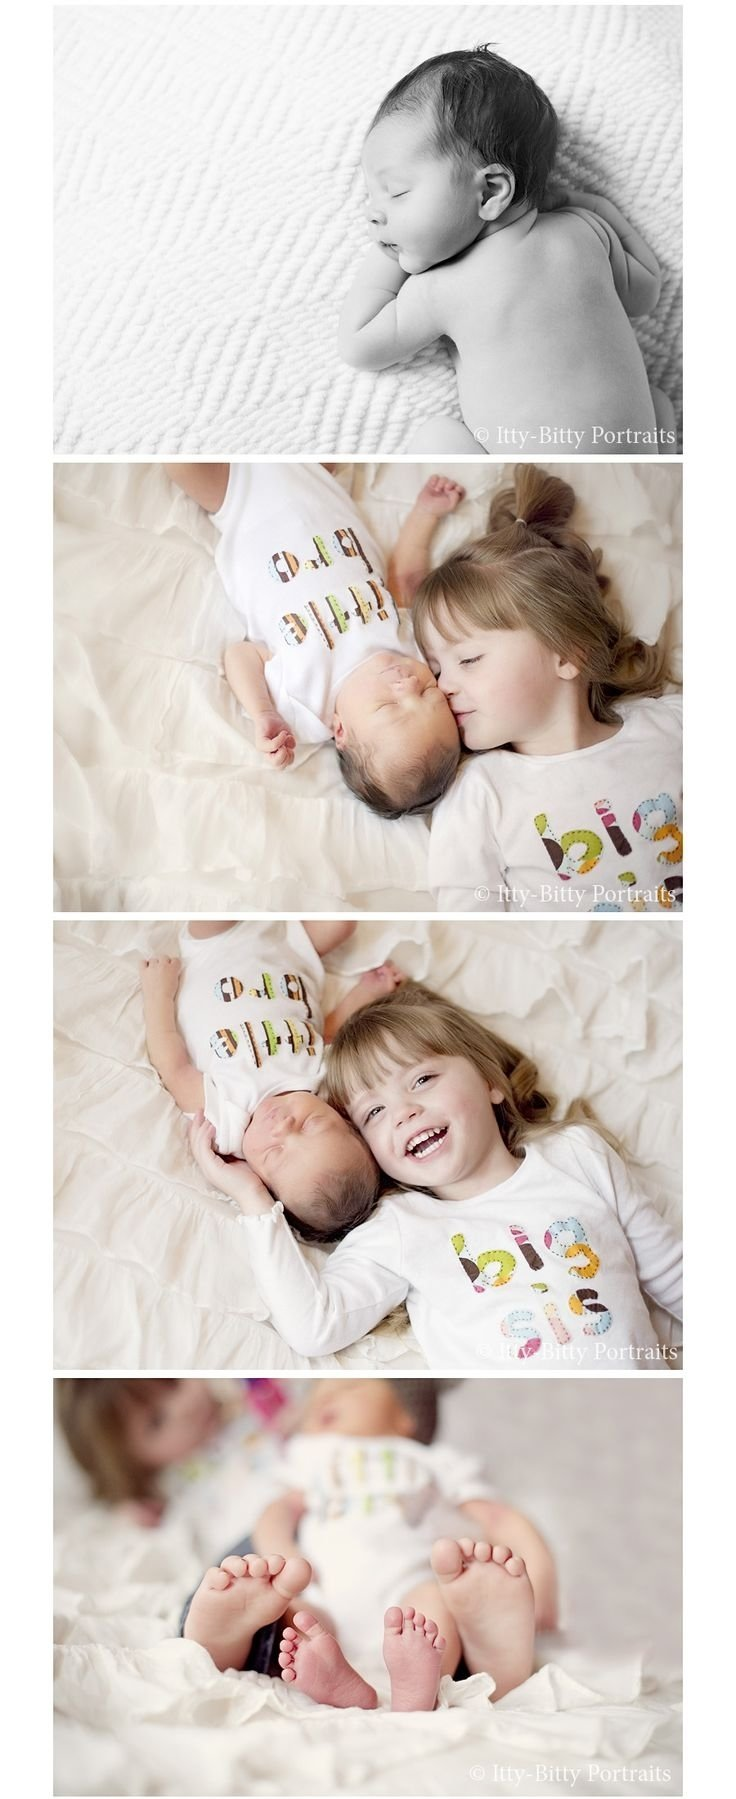 10 Stylish Newborn Photo Ideas With Siblings 113 best baby photo ideas with siblings images on pinterest